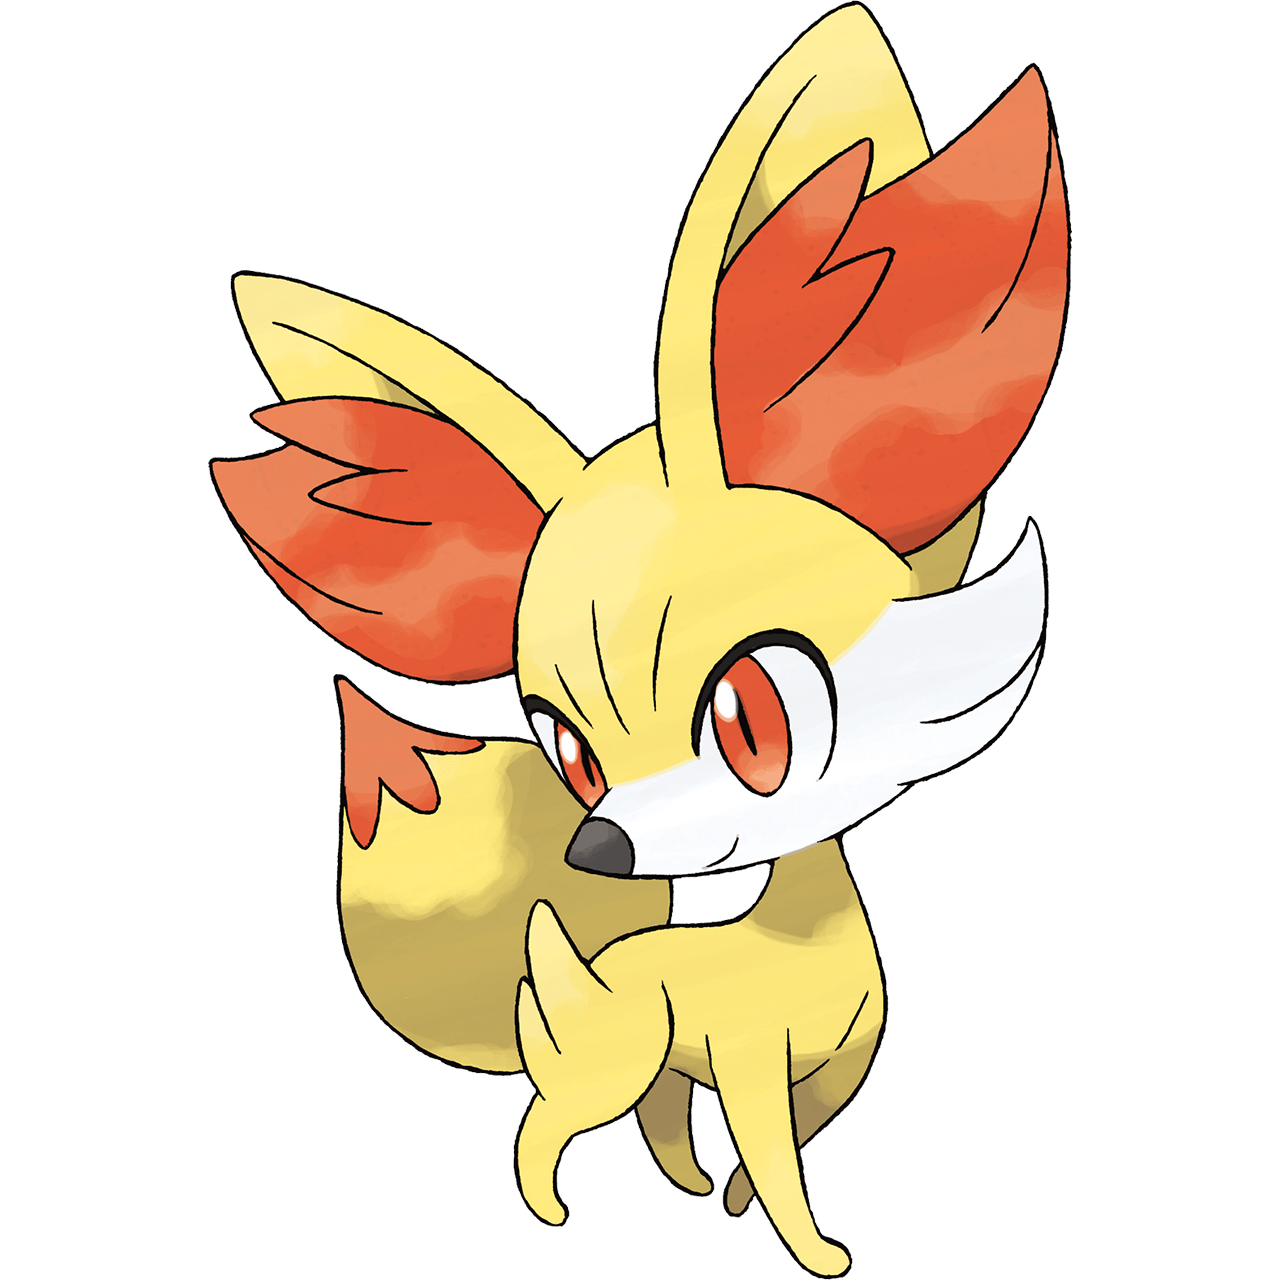 Fennekin | Nin Fanon Wiki | FANDOM powered by Wikia